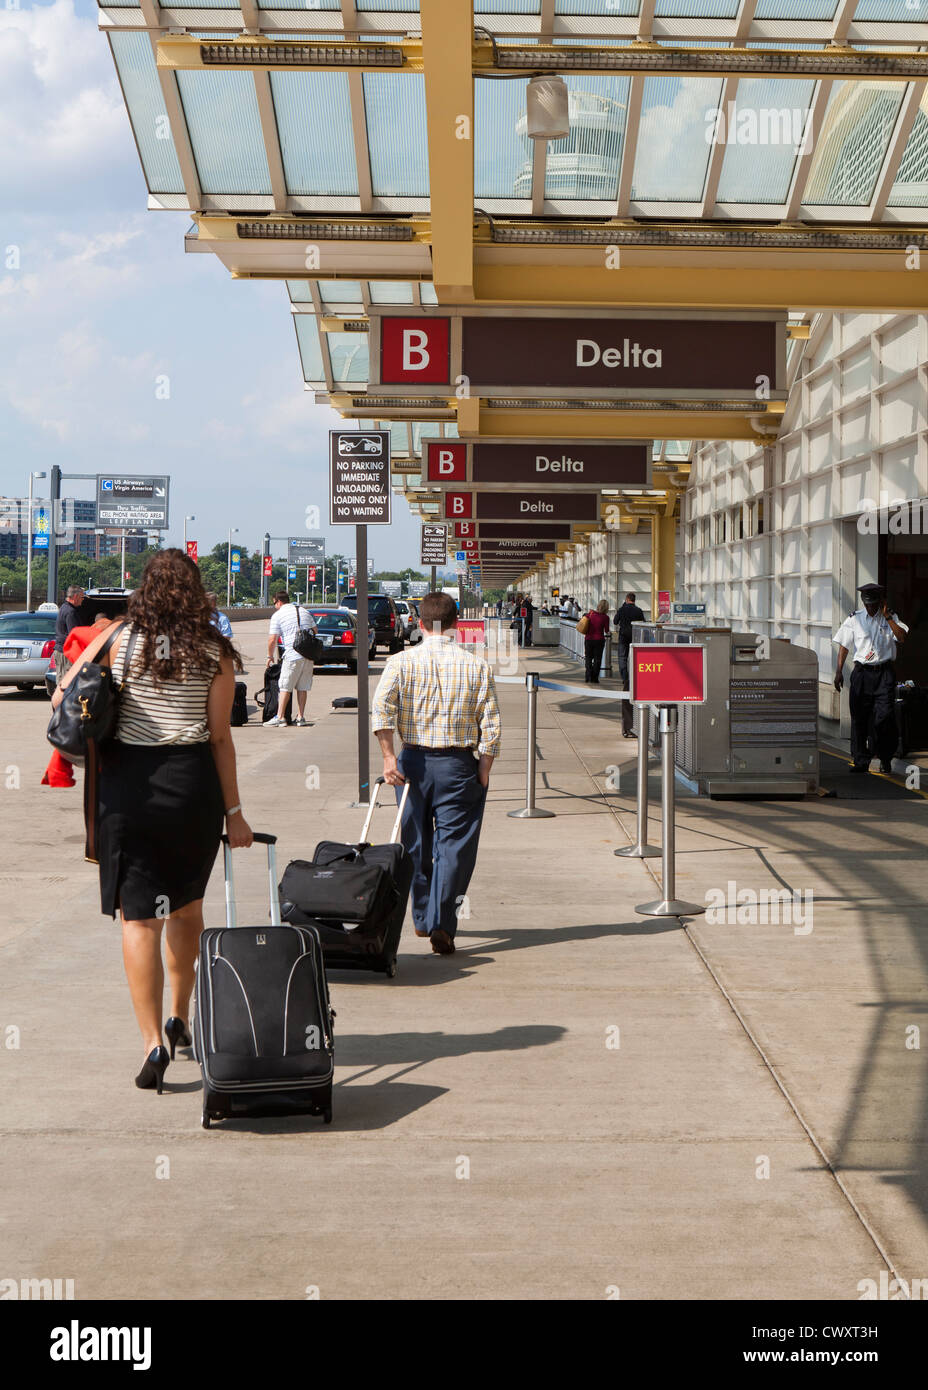 Curb-side baggage check-in area - Ronald Reagan National Airport (DCA)  - Washington, DC USA - Stock Image